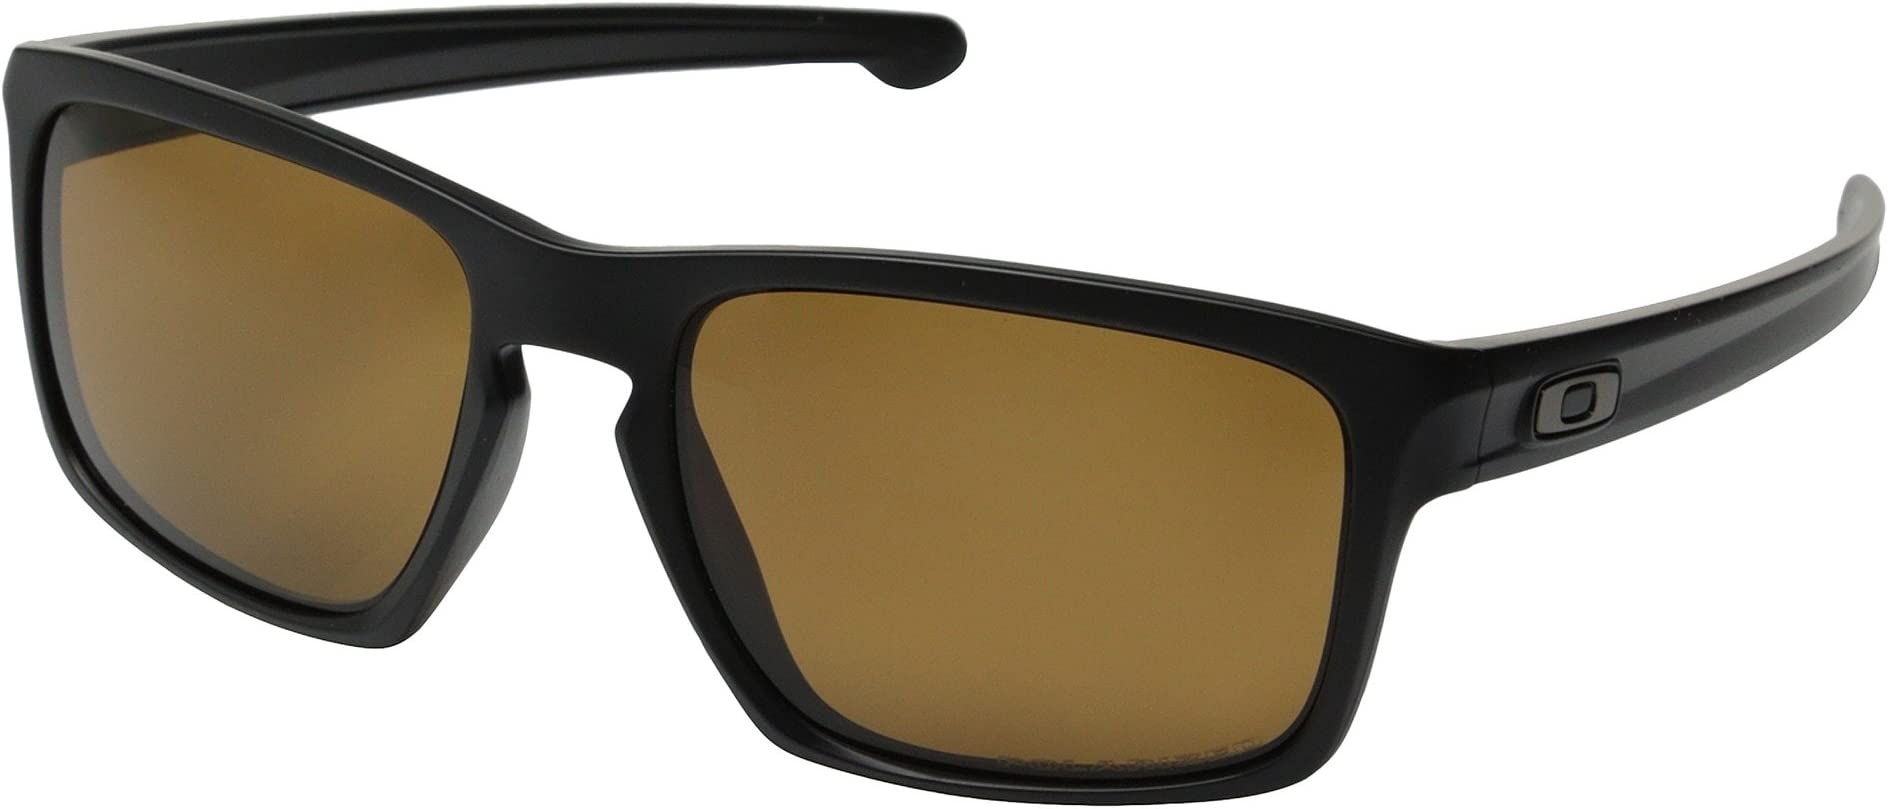 oakley sliver asian fit